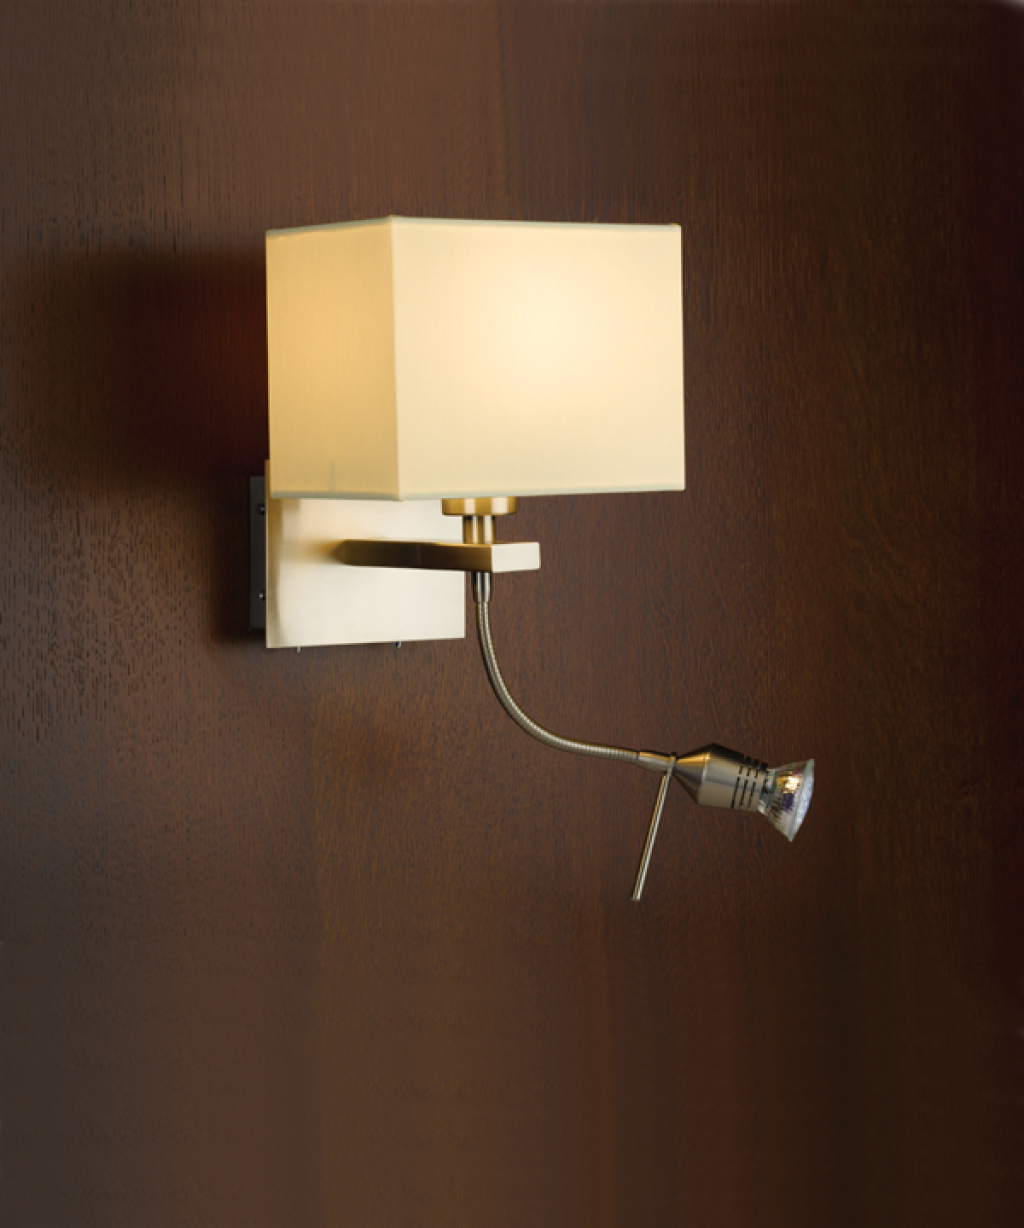 10 Things To Consider Before Installing Wall Light Fixtures Bedroom Wiring Sconce Be That As It May Set A Disposition Needs Decent Eye For Outline So Your Room Lighting Fits In With Whatever Remains Of Decor